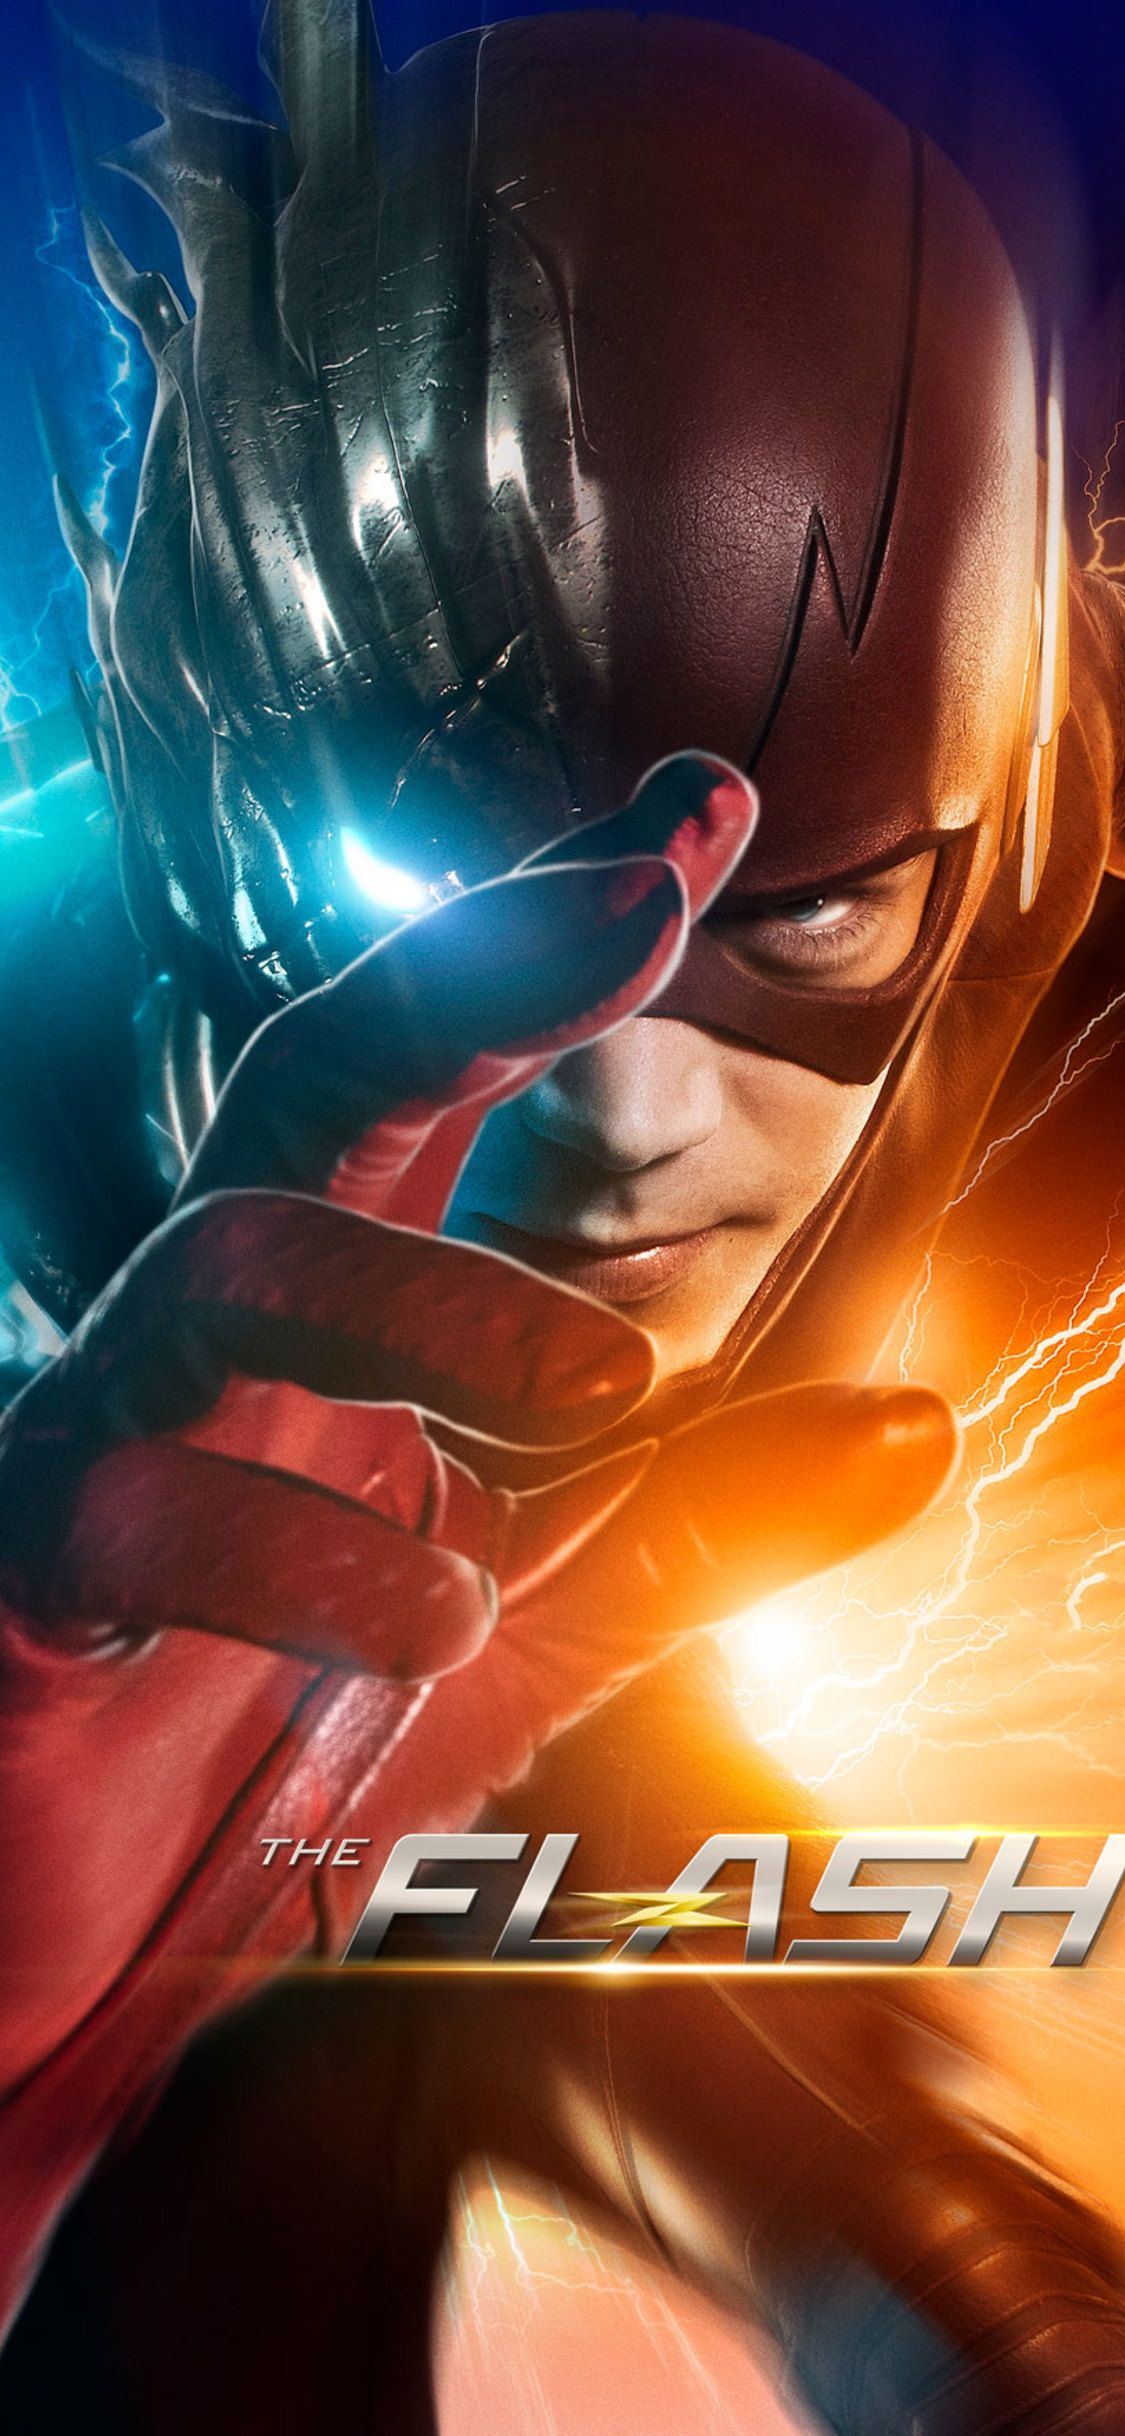 1125x2436 The Flash Tv Show 2017 Iphone Xs Iphone 10 Iphone X Hd 4k Wallpapers Images Backgrounds Photos A Flash Wallpaper The Flash Poster Flash Characters